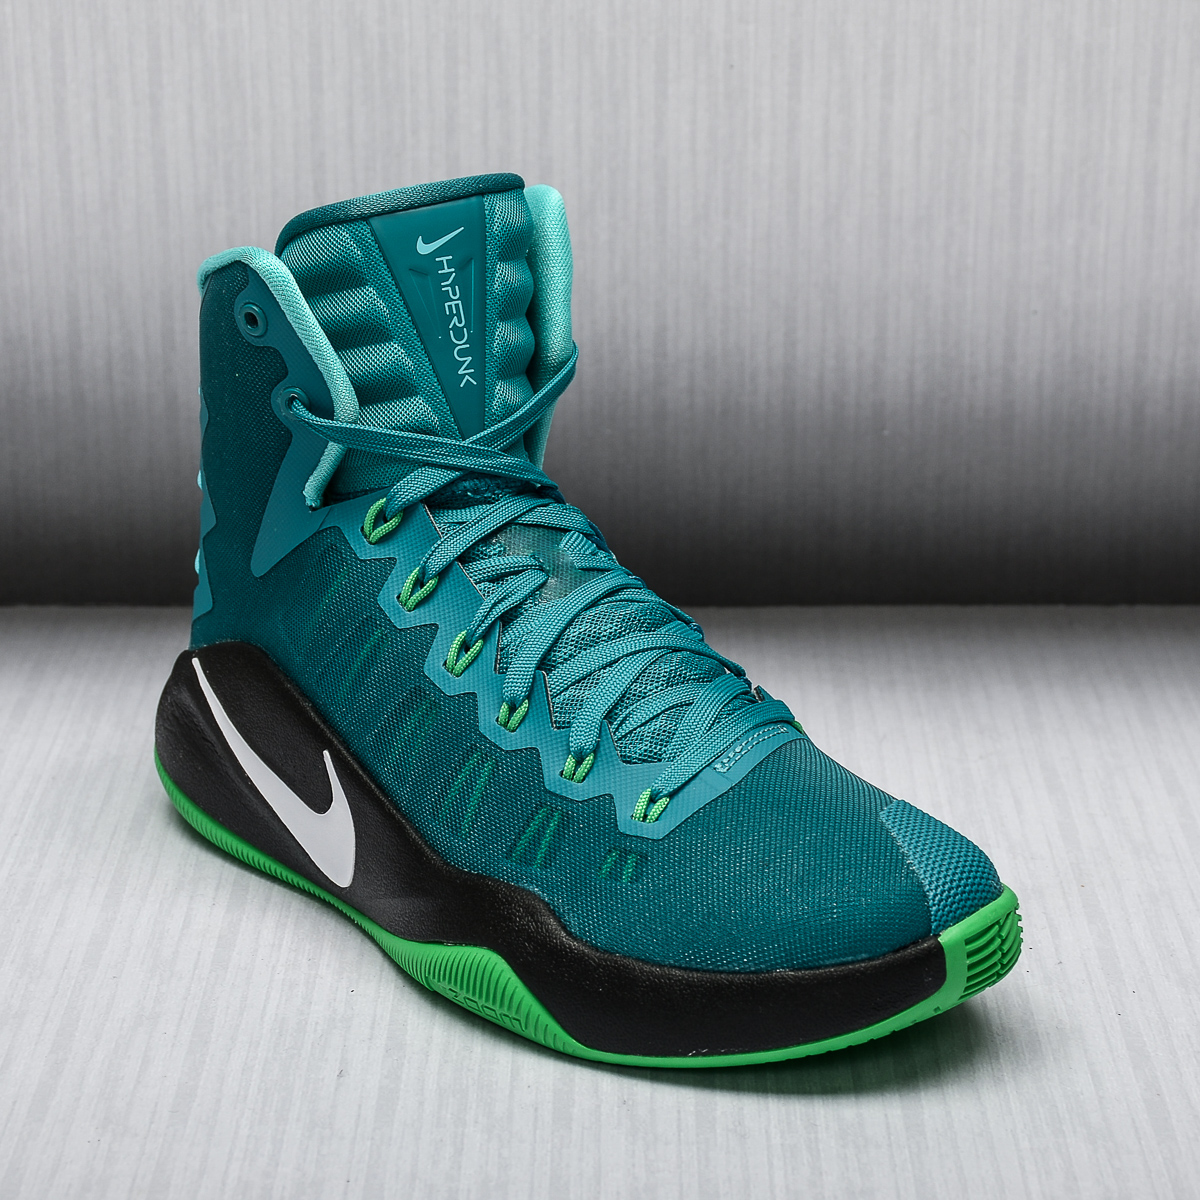 Basketball Shoes Nike Hyperdunk - Style Guru: Fashion ...